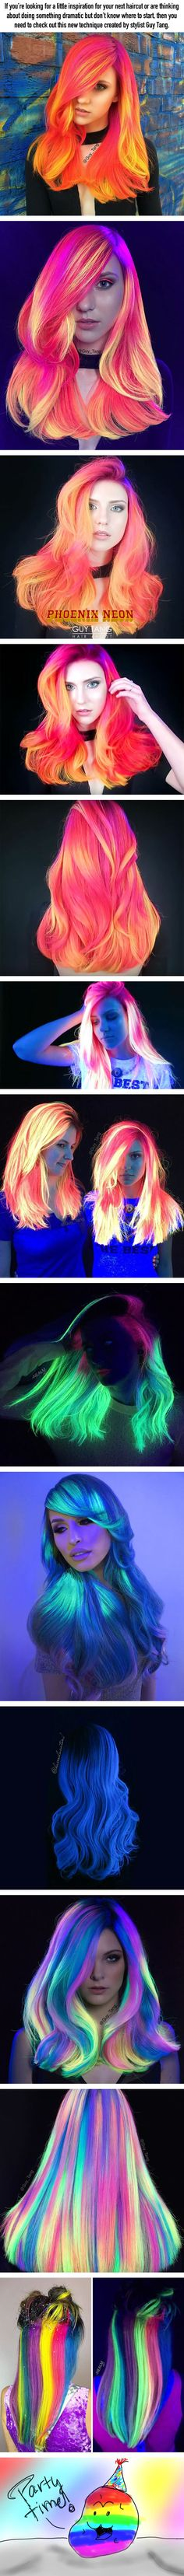 People are crazy about this glow-in-the-dark hair trend - 9GAG